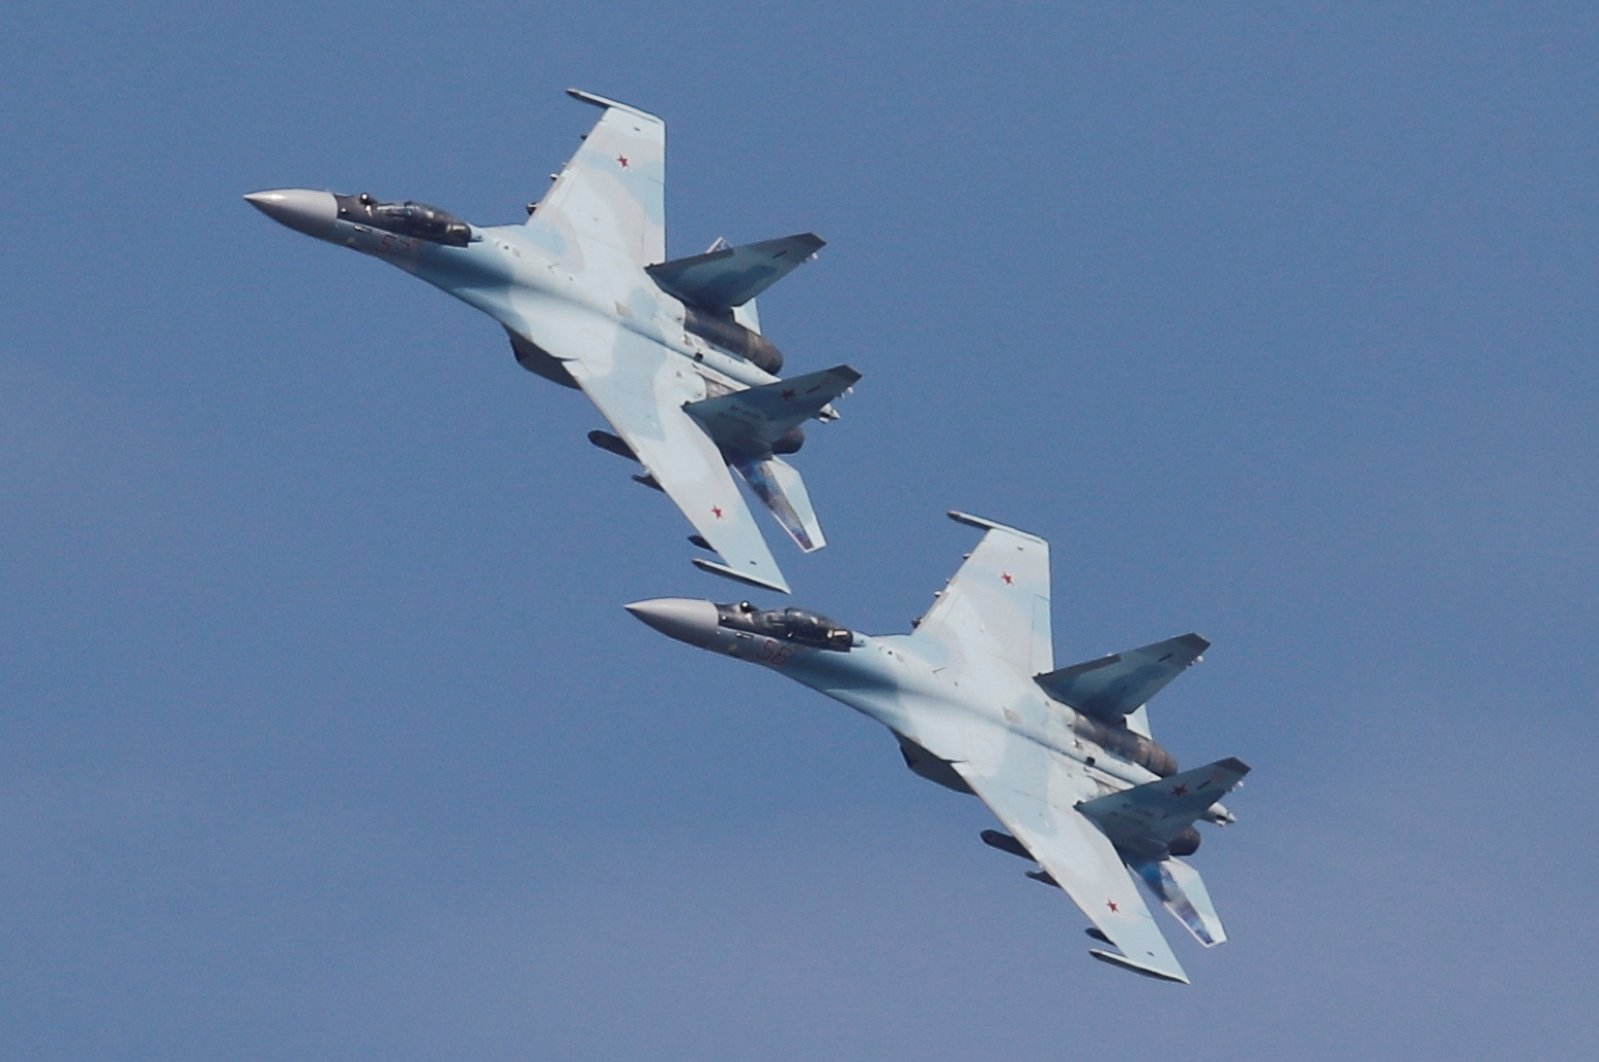 Sukhoi Su-35 jet fighters fly in formation during the Aviadarts competition, as part of the International Army Games 2018, at the Dubrovichi range outside Ryazan, Russia, Aug. 4, 2018. (Reuters File Photo)